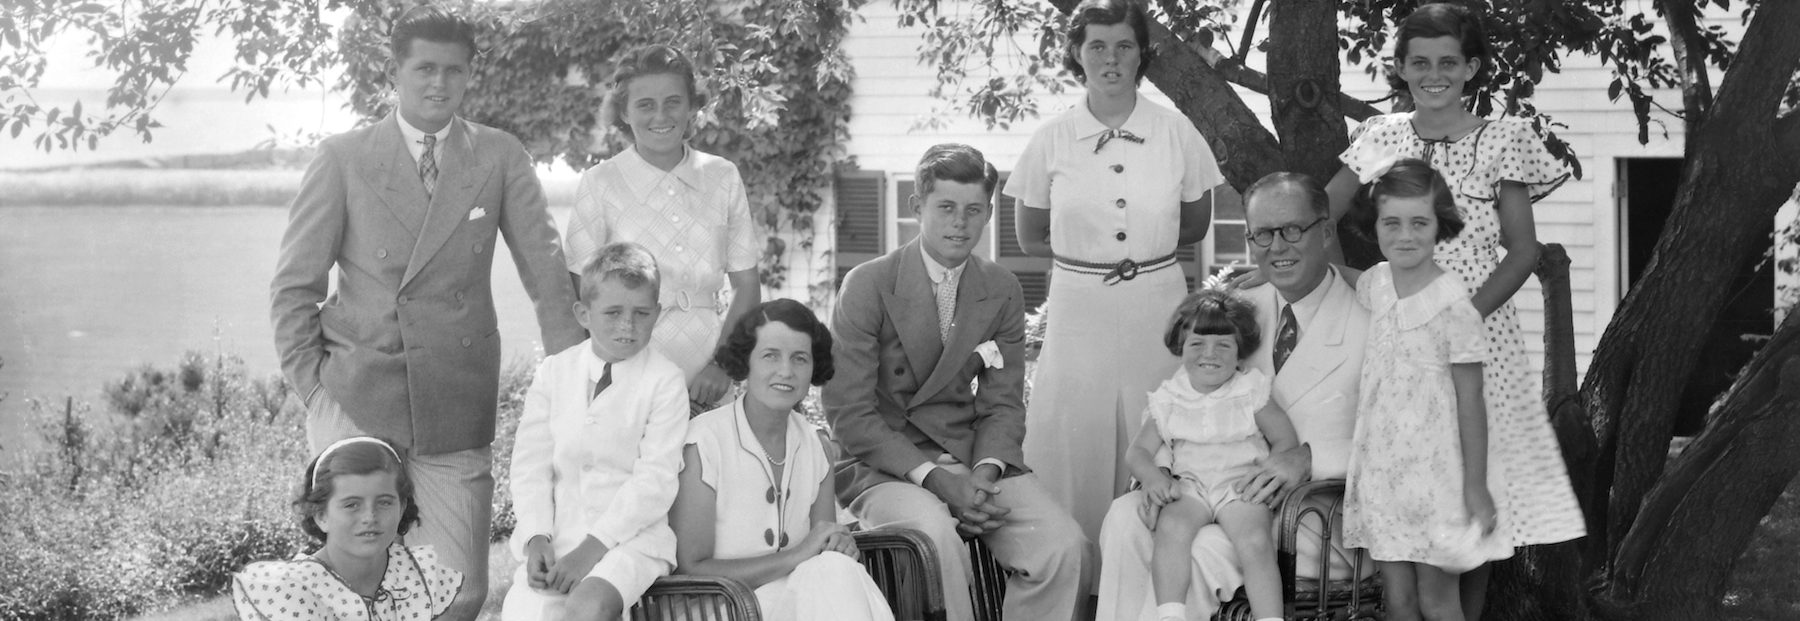 A portrait of the Kennedy family,  1930s. Seated from left are: Patricia Kennedy, Robert Kennedy, Rose Kennedy, John F Kennedy, Joseph P Kennedy Sr with Edward Kennedy on his lap; standing from left are: Joseph P Kennedy Jr, Kathleen Kennedy, Rosemary Kennedy, Eunice Kennedy (rear, in polka dots), and Jean Kennedy. (Bachrach/Getty Images)